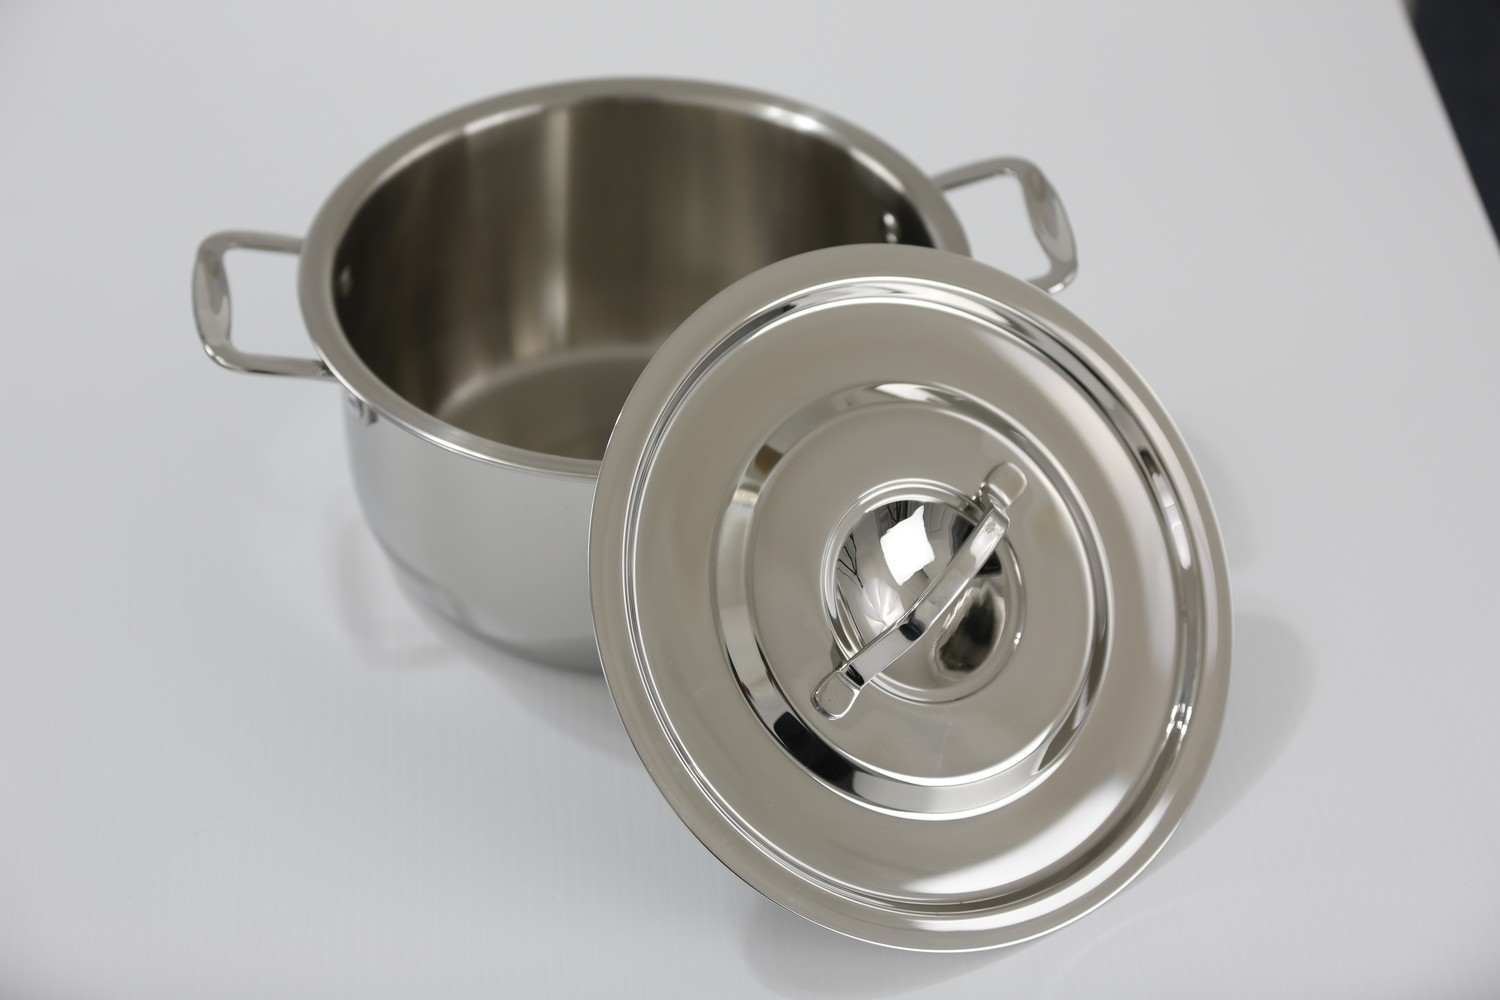 SS1- 4.23 Qt. SS1 Stainless Steel Sauce Pot with Stainless Steel Cover